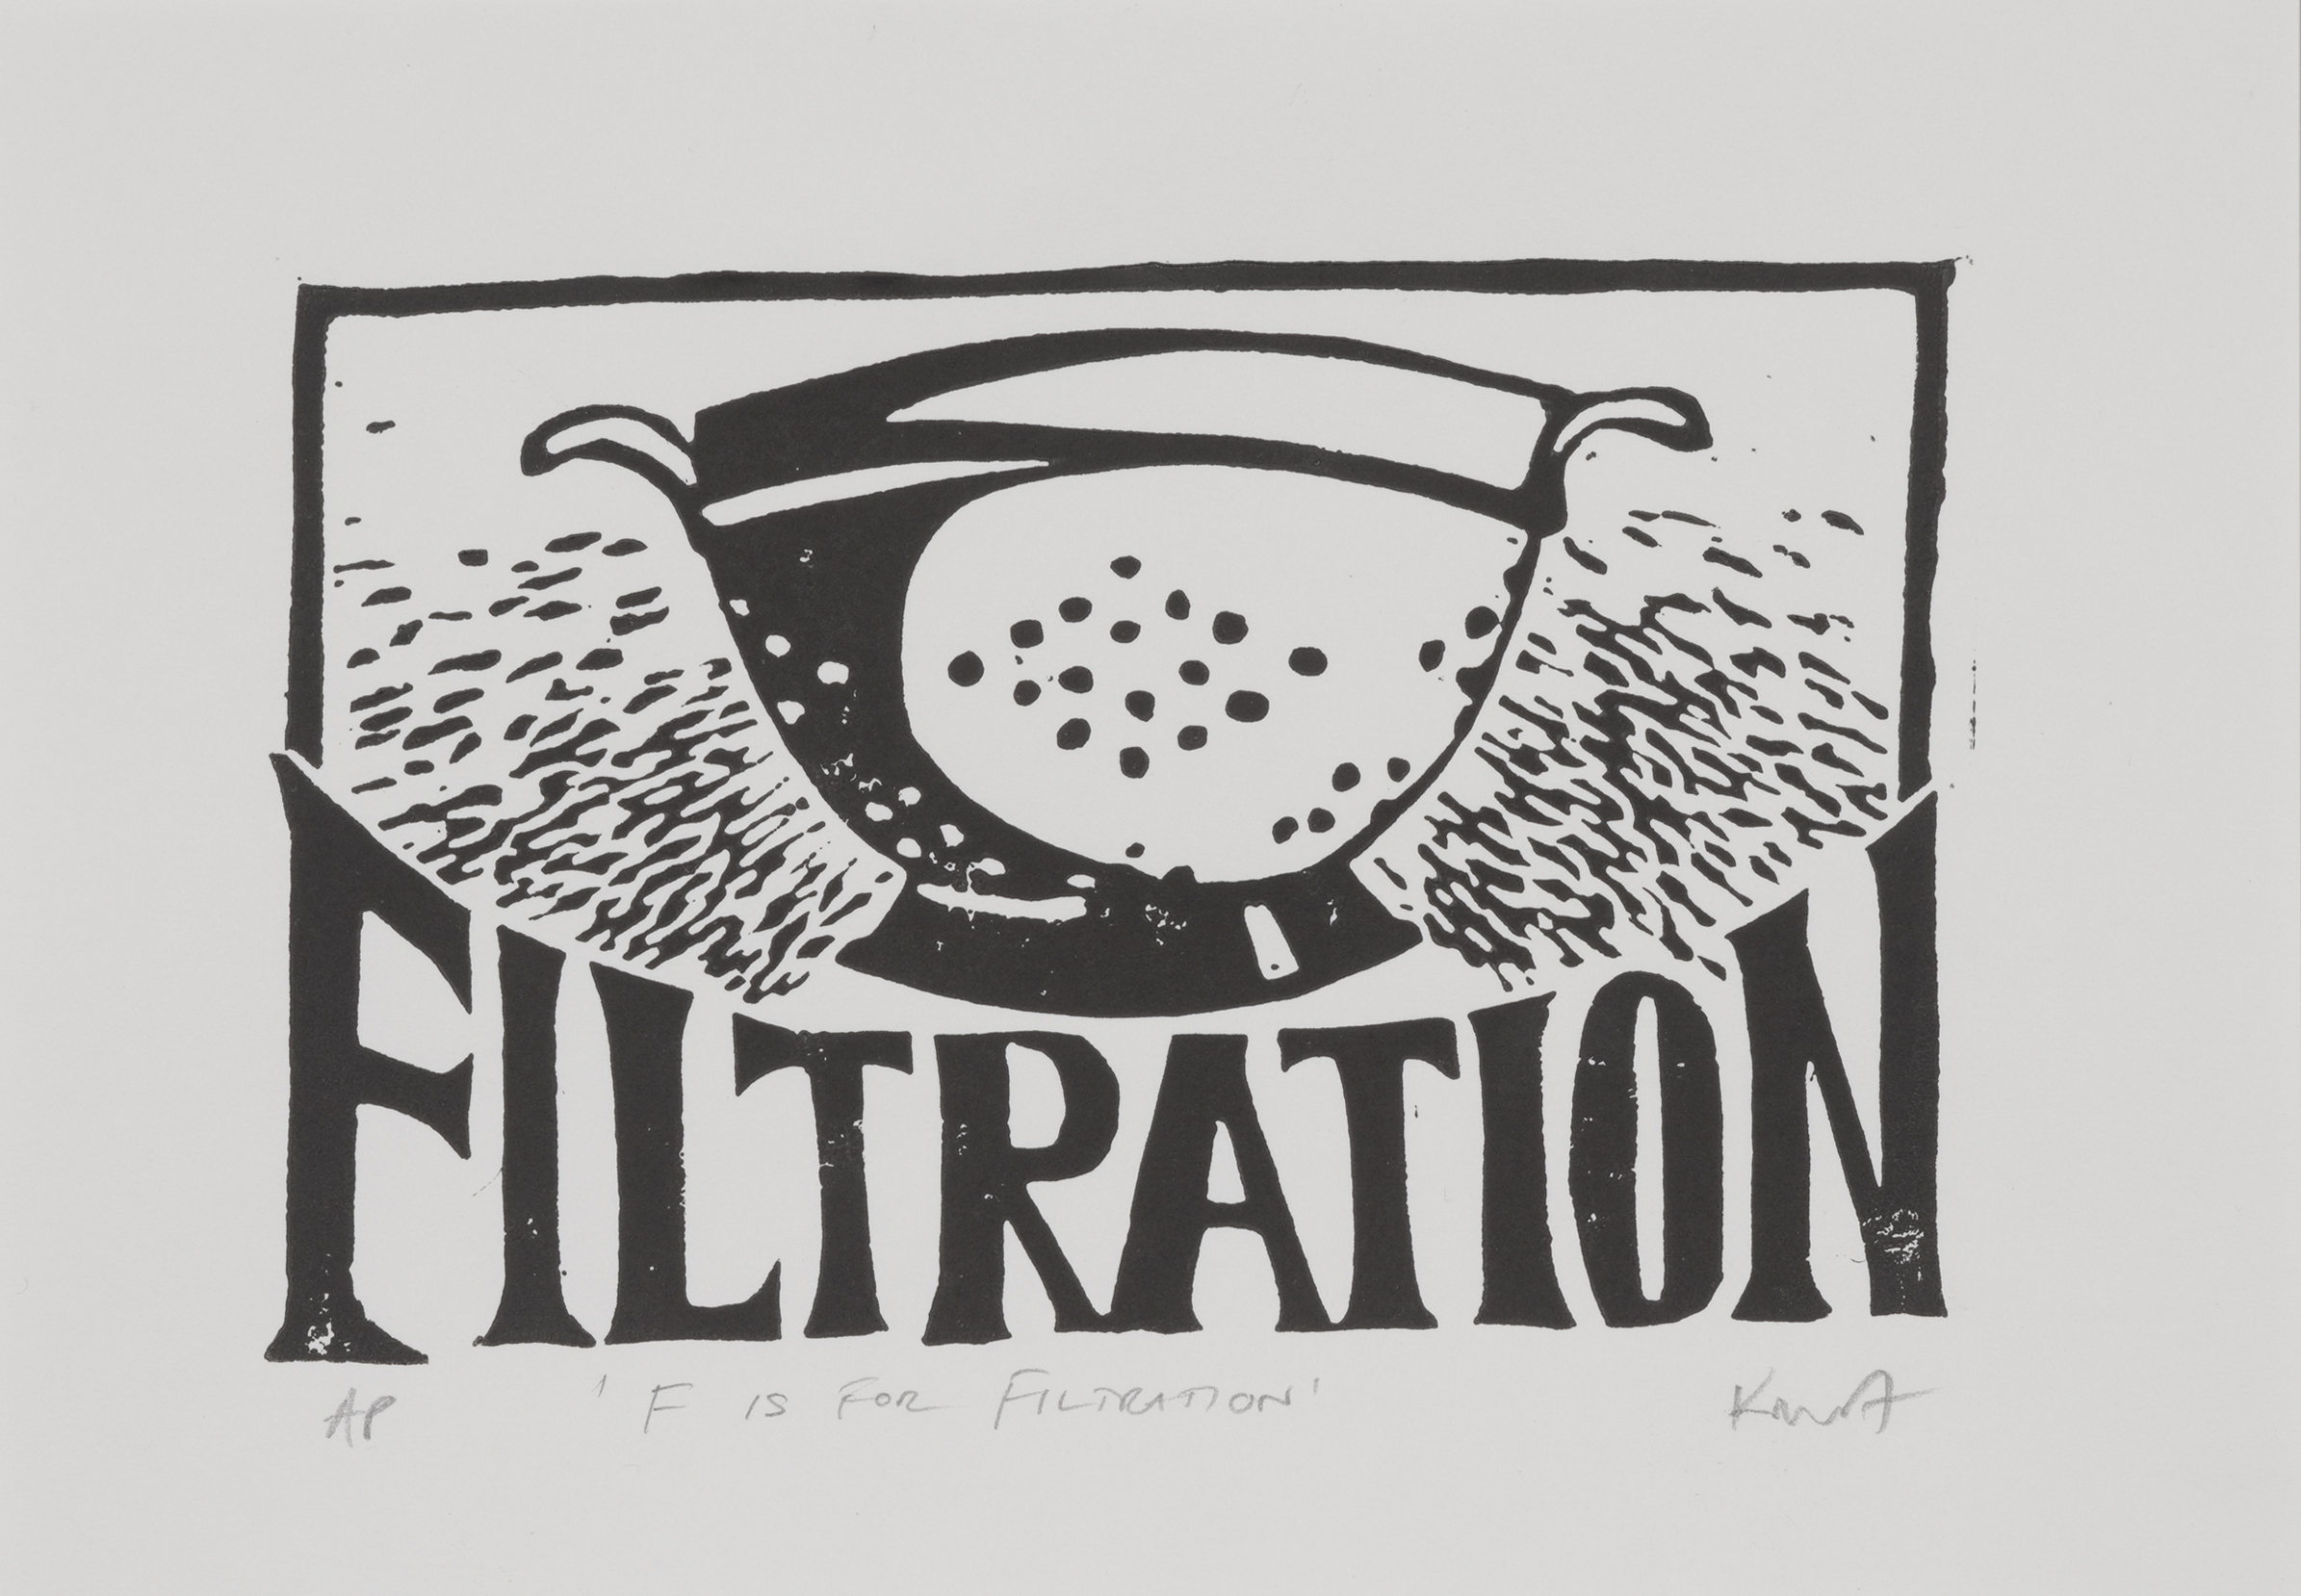 F is for filtration